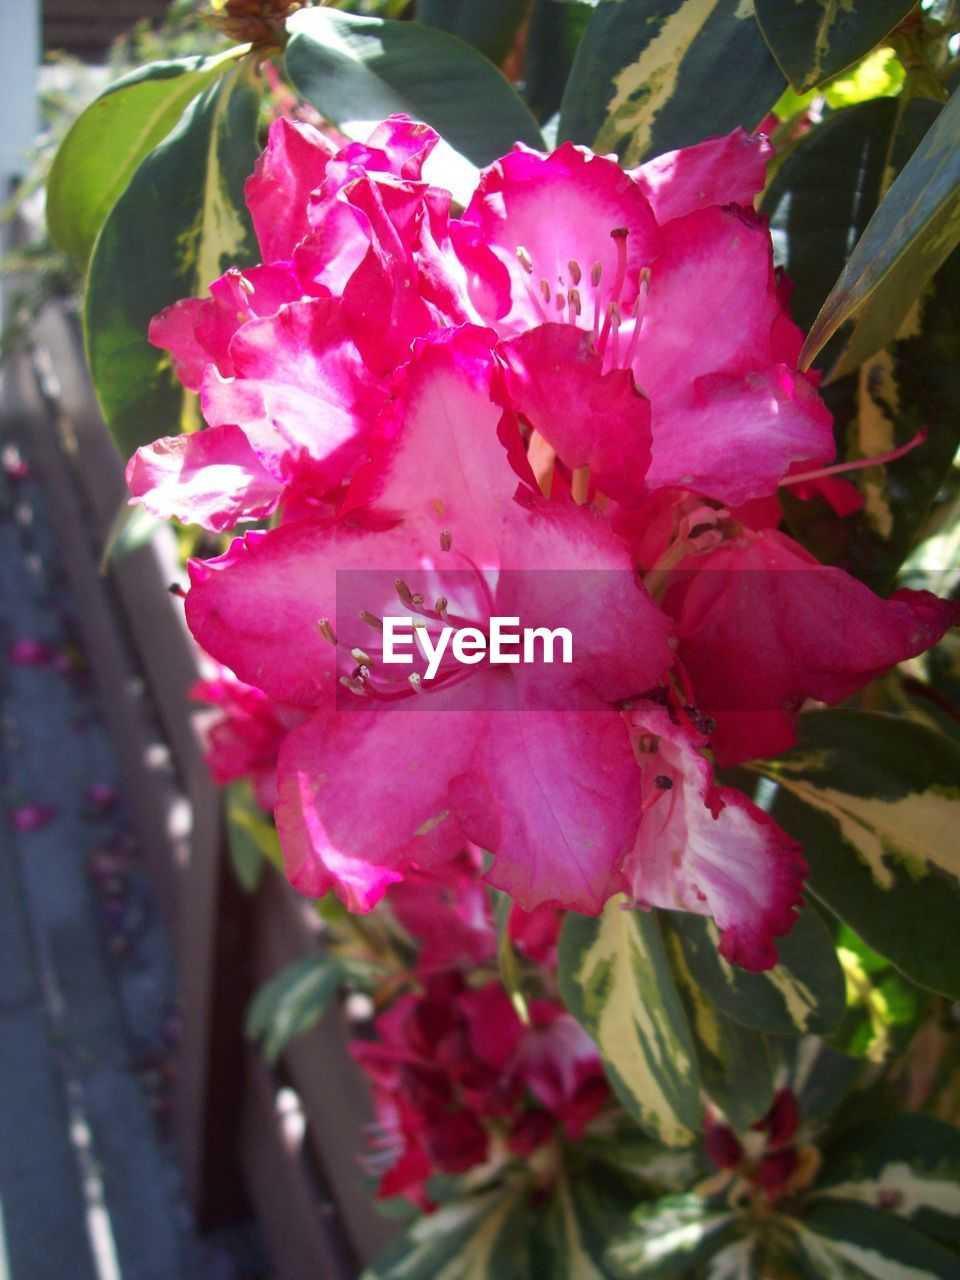 flower, growth, beauty in nature, petal, pink color, fragility, nature, no people, freshness, blossom, plant, day, stamen, flower head, close-up, outdoors, springtime, bougainvillea, blooming, tree